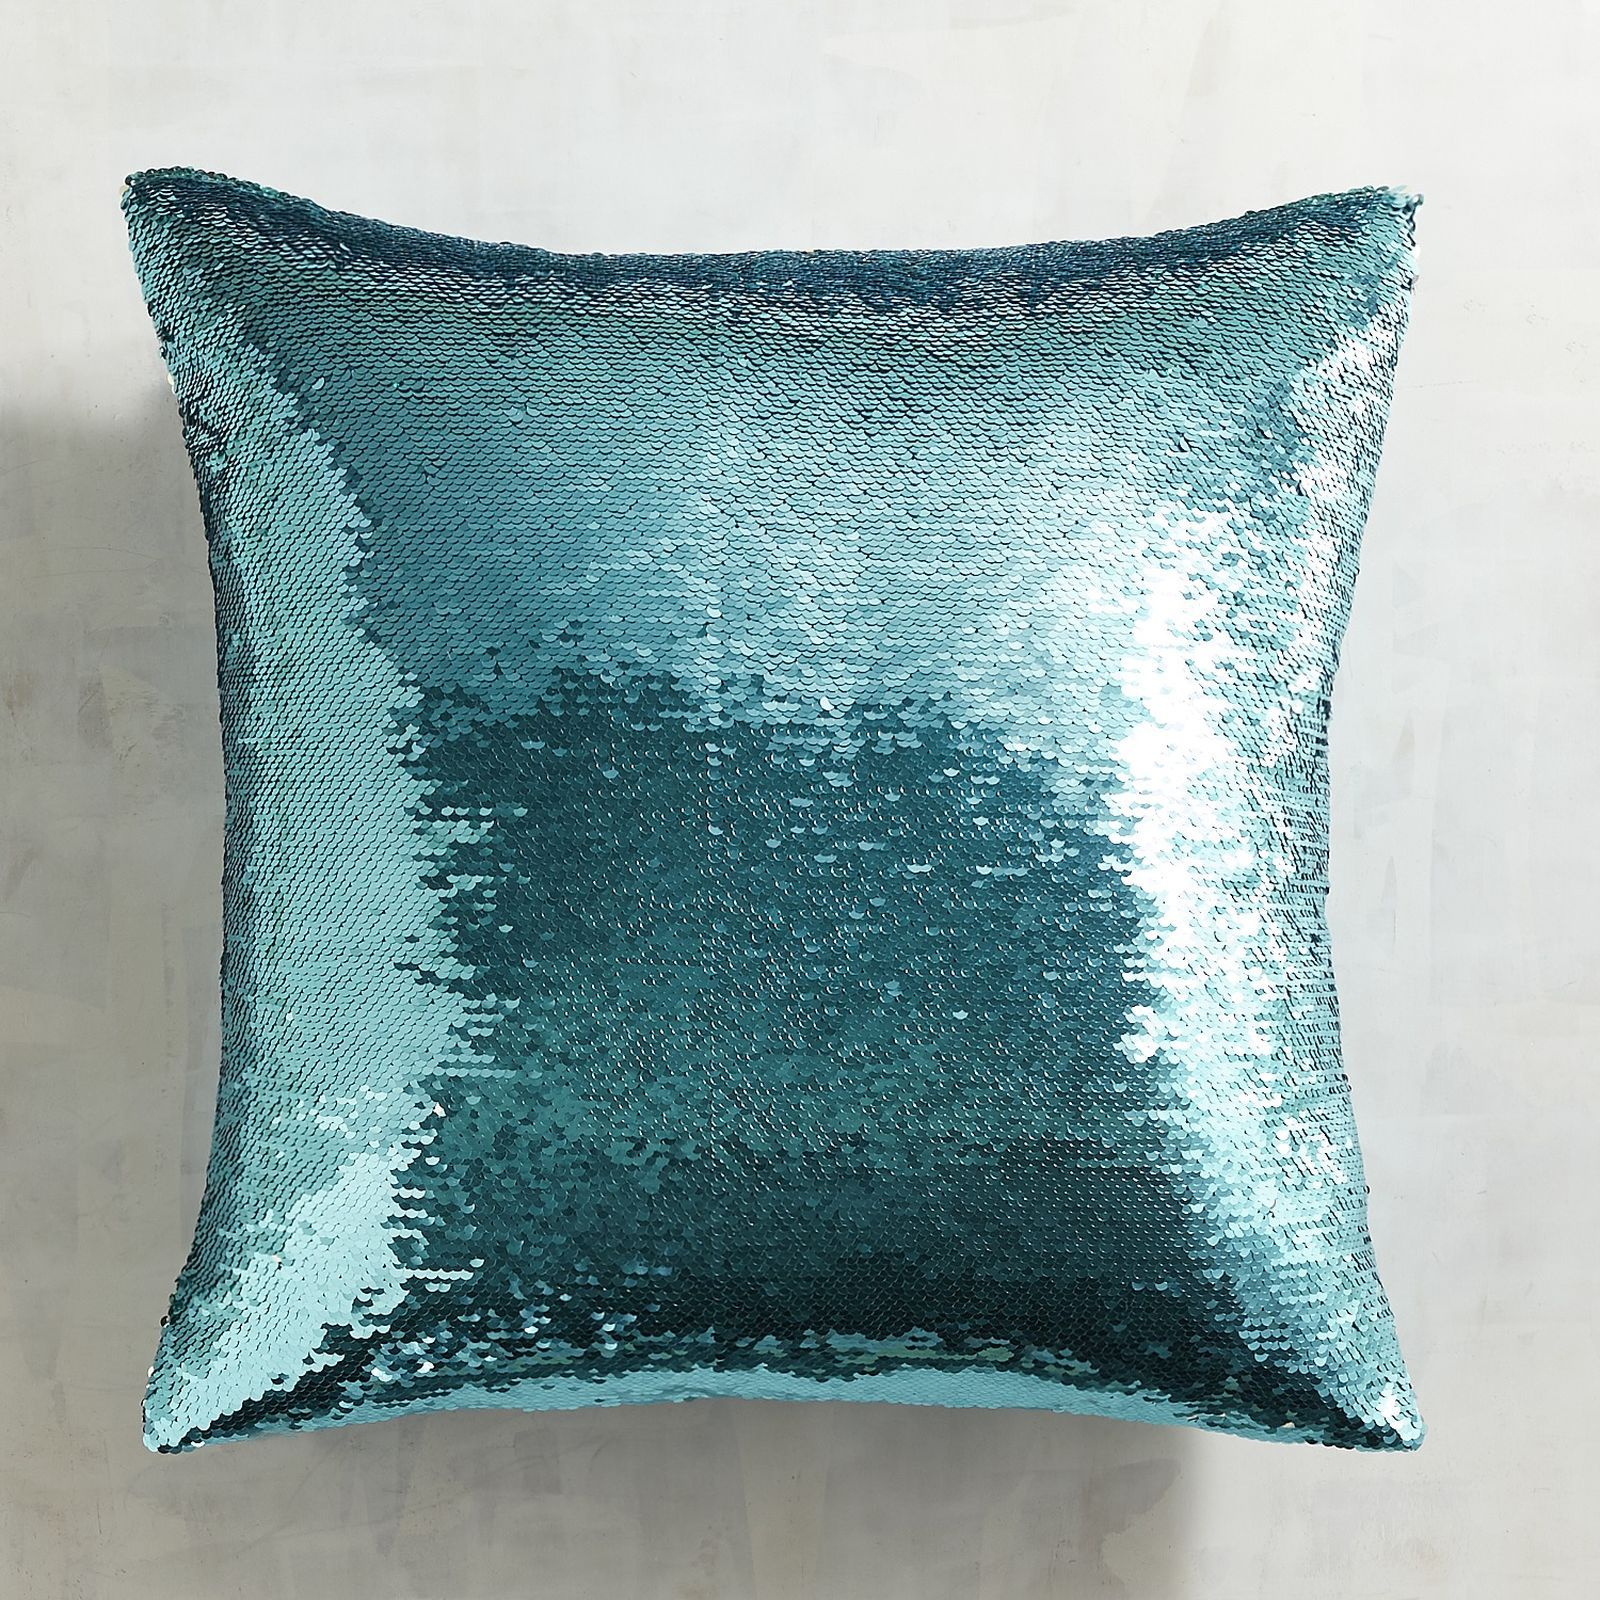 velvet online couch cushion bedroom shop br pillow cushions teal simons colourful sofas for cm canada en x in